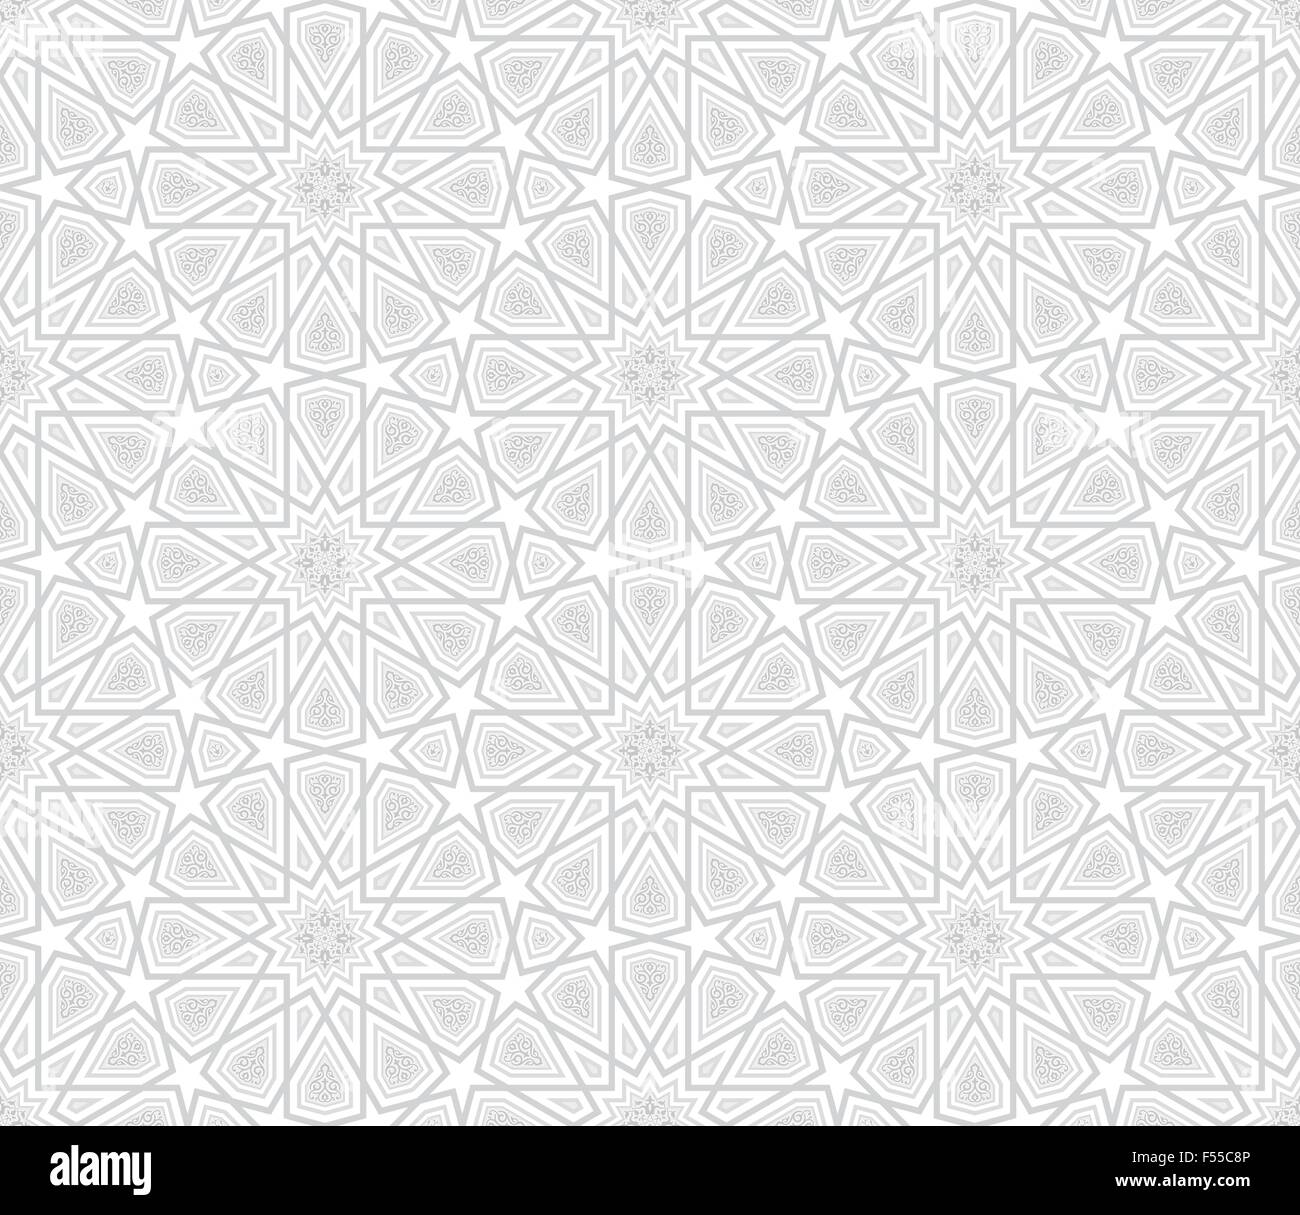 Arabesque Star Pattern Light Grey Background Vector